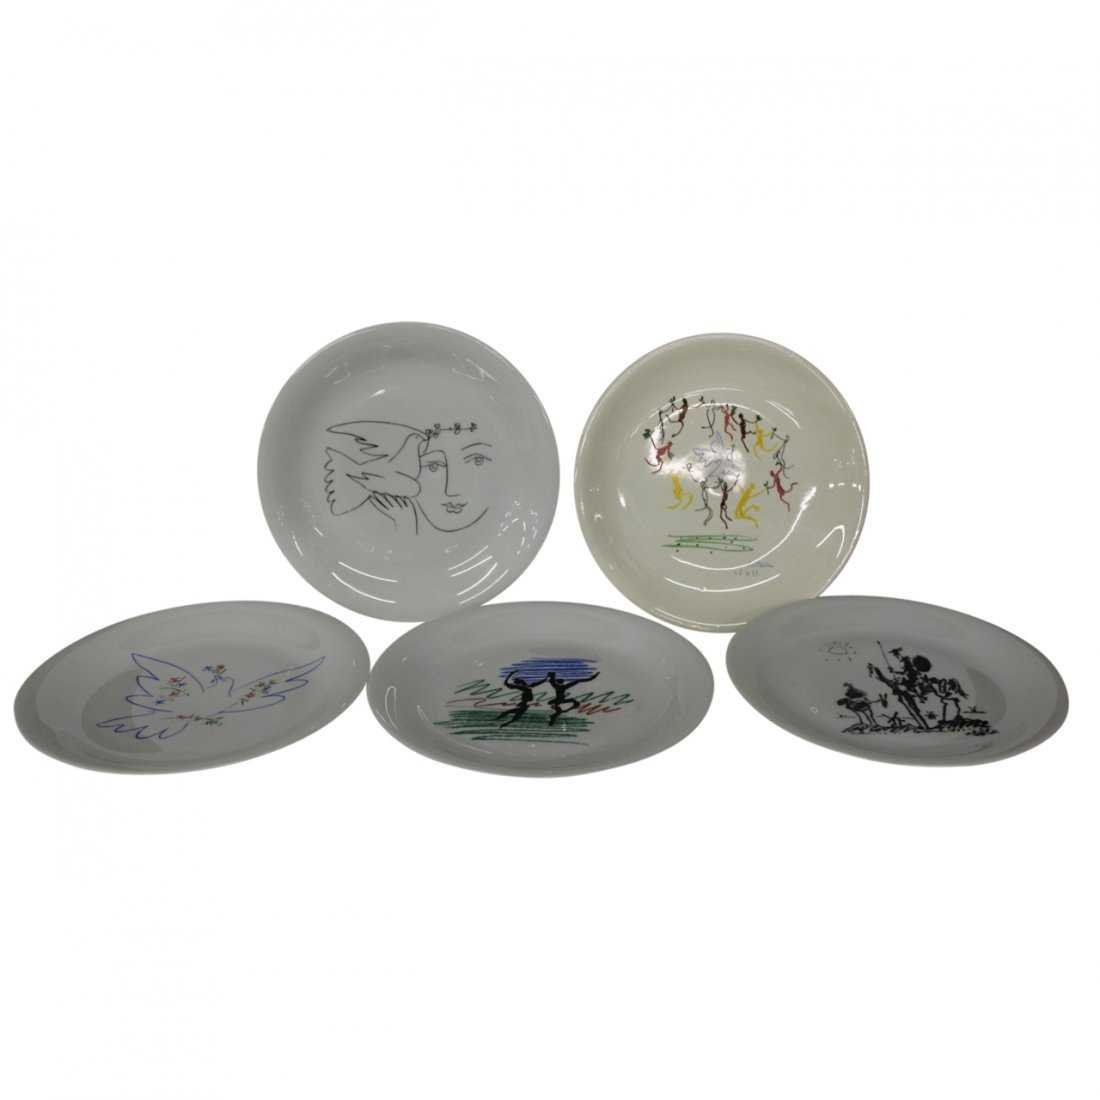 Picasso Plates by Limoges Measuring